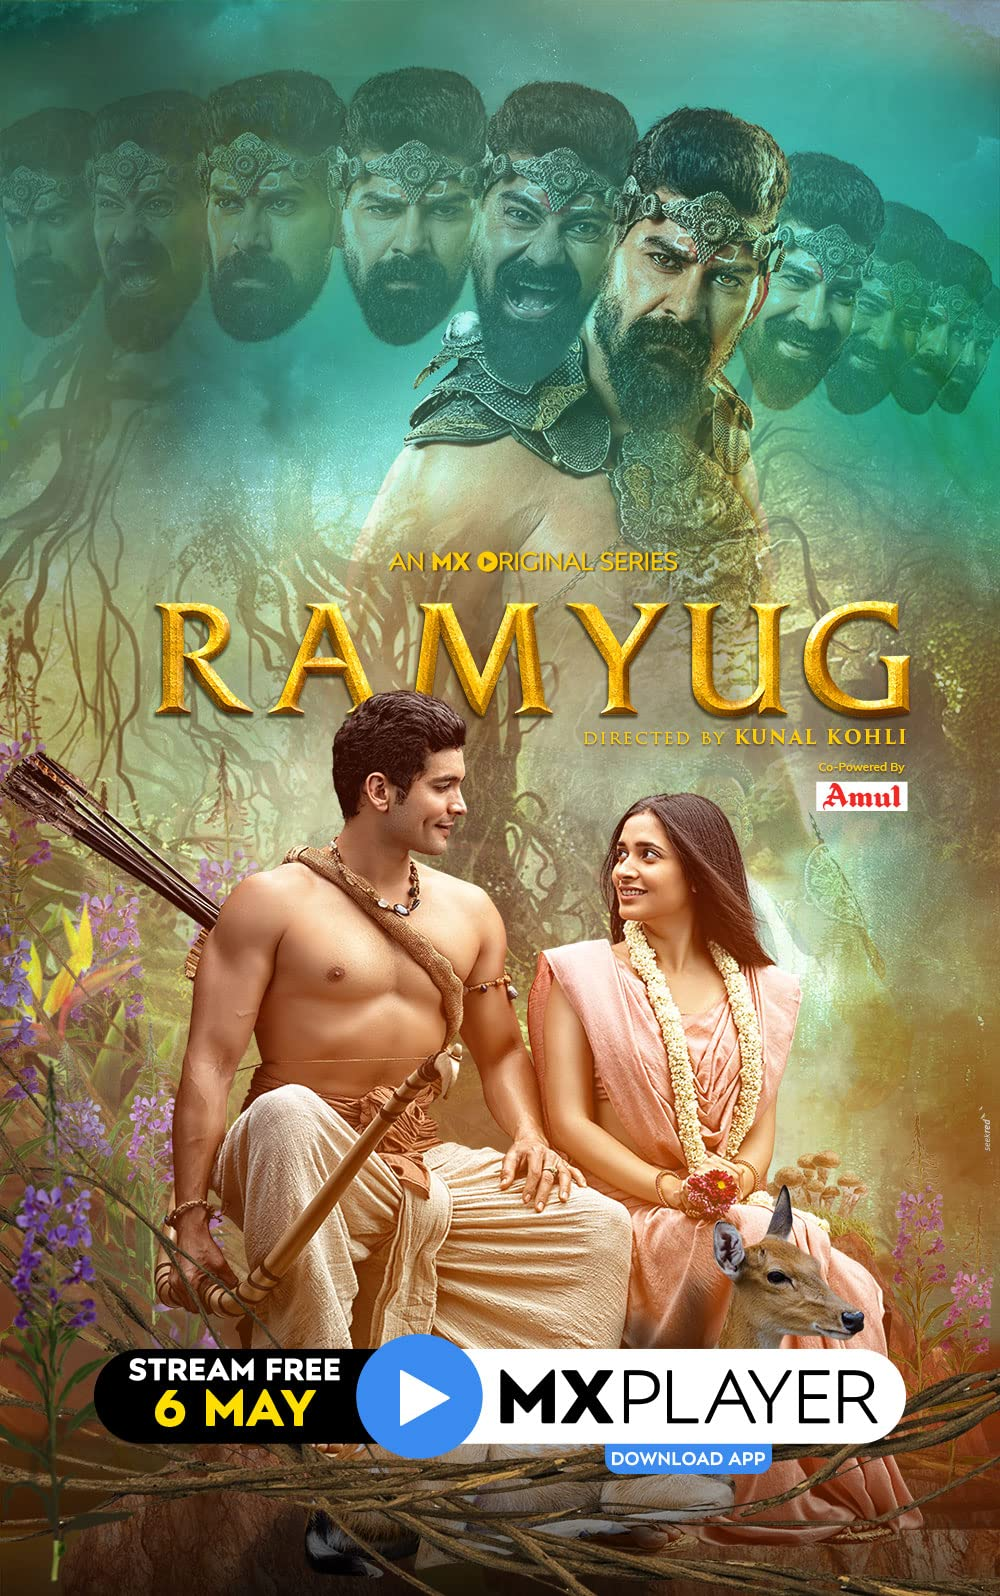 Ramyug 2021 S01 Hindi MX Original Complete Web Series 720p HDRip 2GB x264 AAC